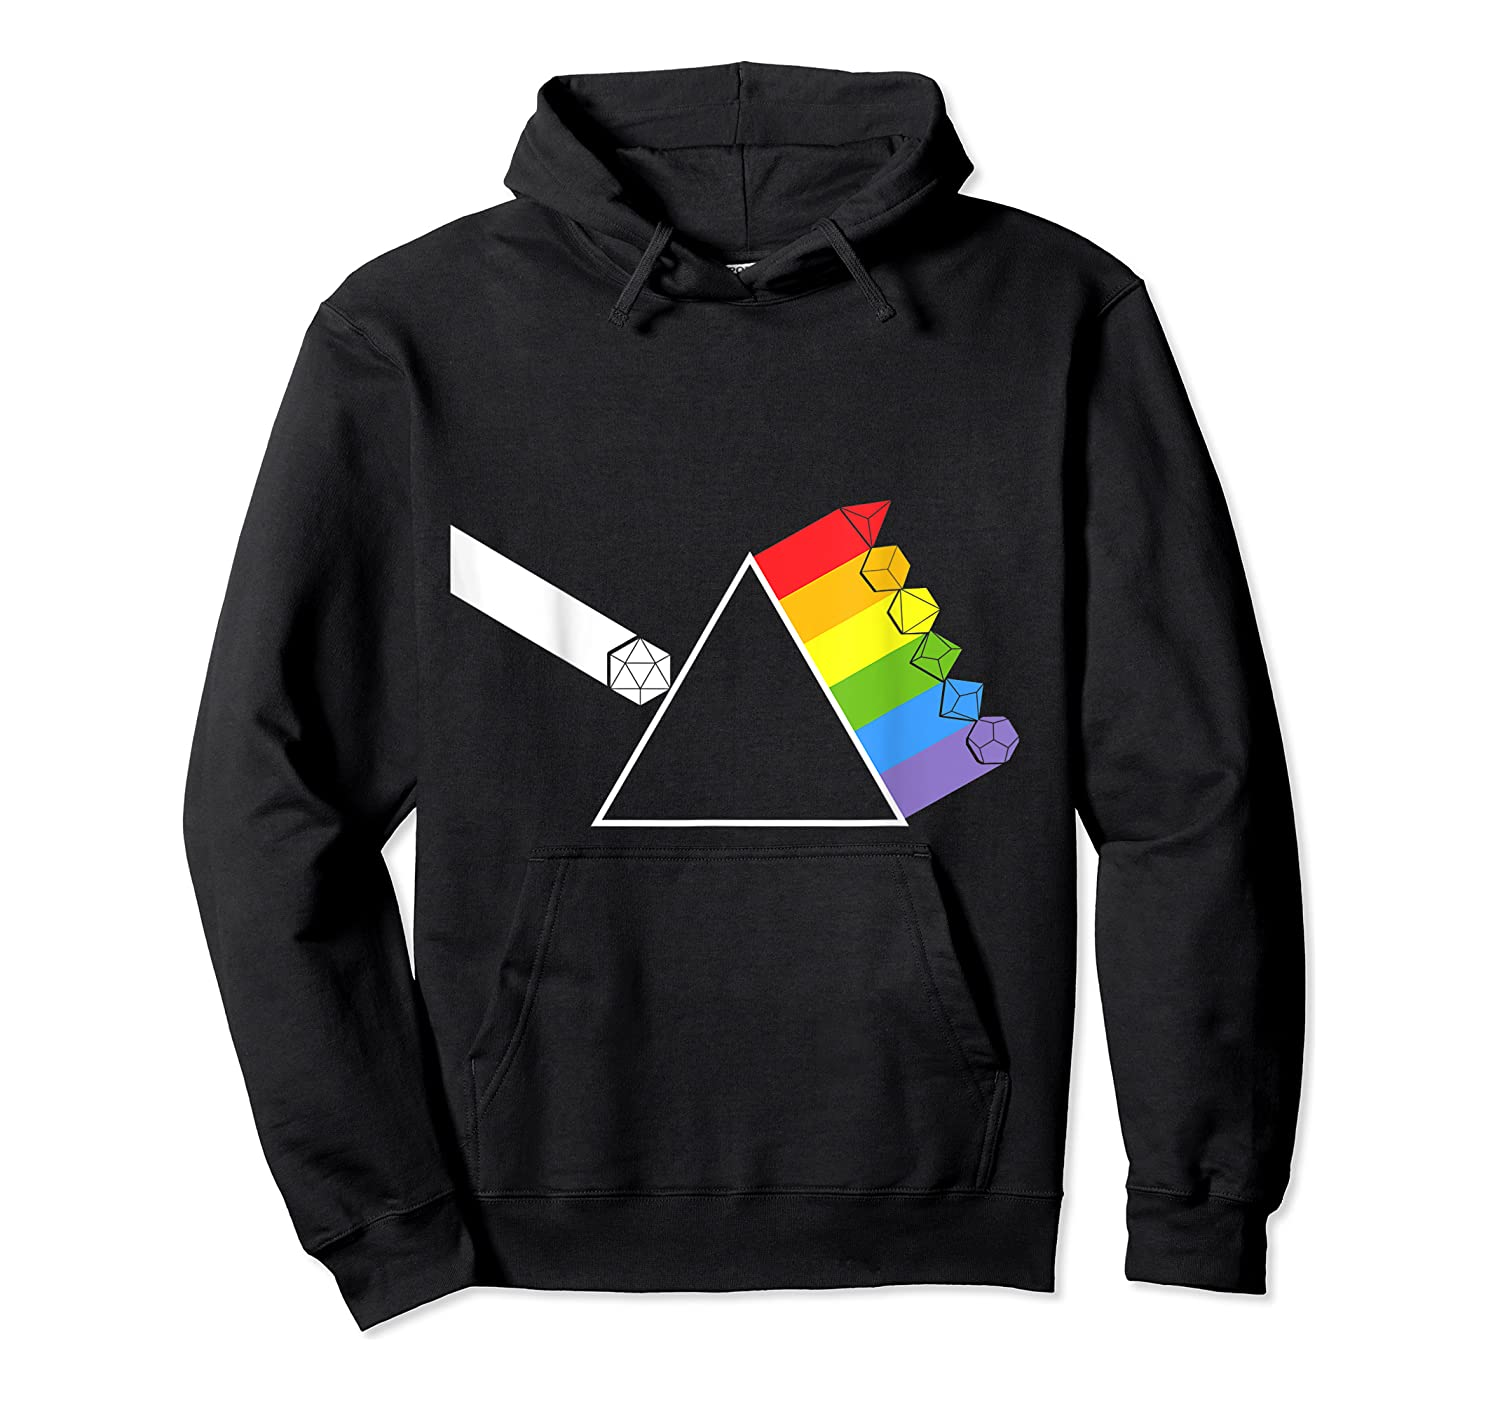 Diceside Of The Moon D20 Dice Set Tabletop Game Shirts Unisex Pullover Hoodie